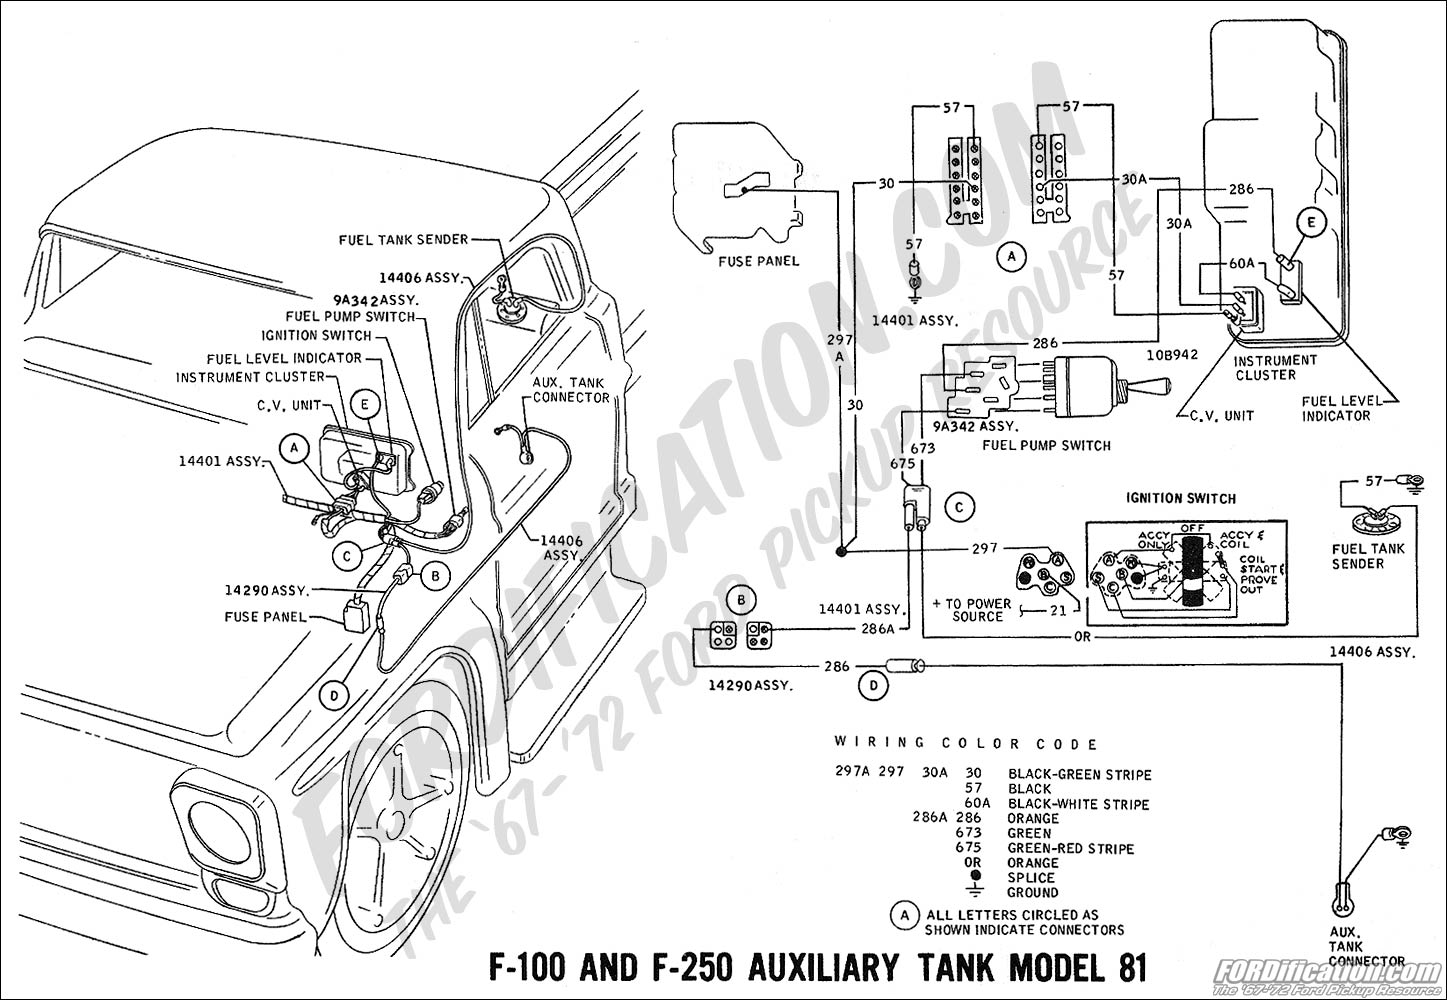 1966 ford f100 fuse box wiring diagram g9 1964 Plymouth Sport Fury 1966 ford f100 fuse box wiring diagram ebook 1983 ford f100 1966 ford f100 fuse box